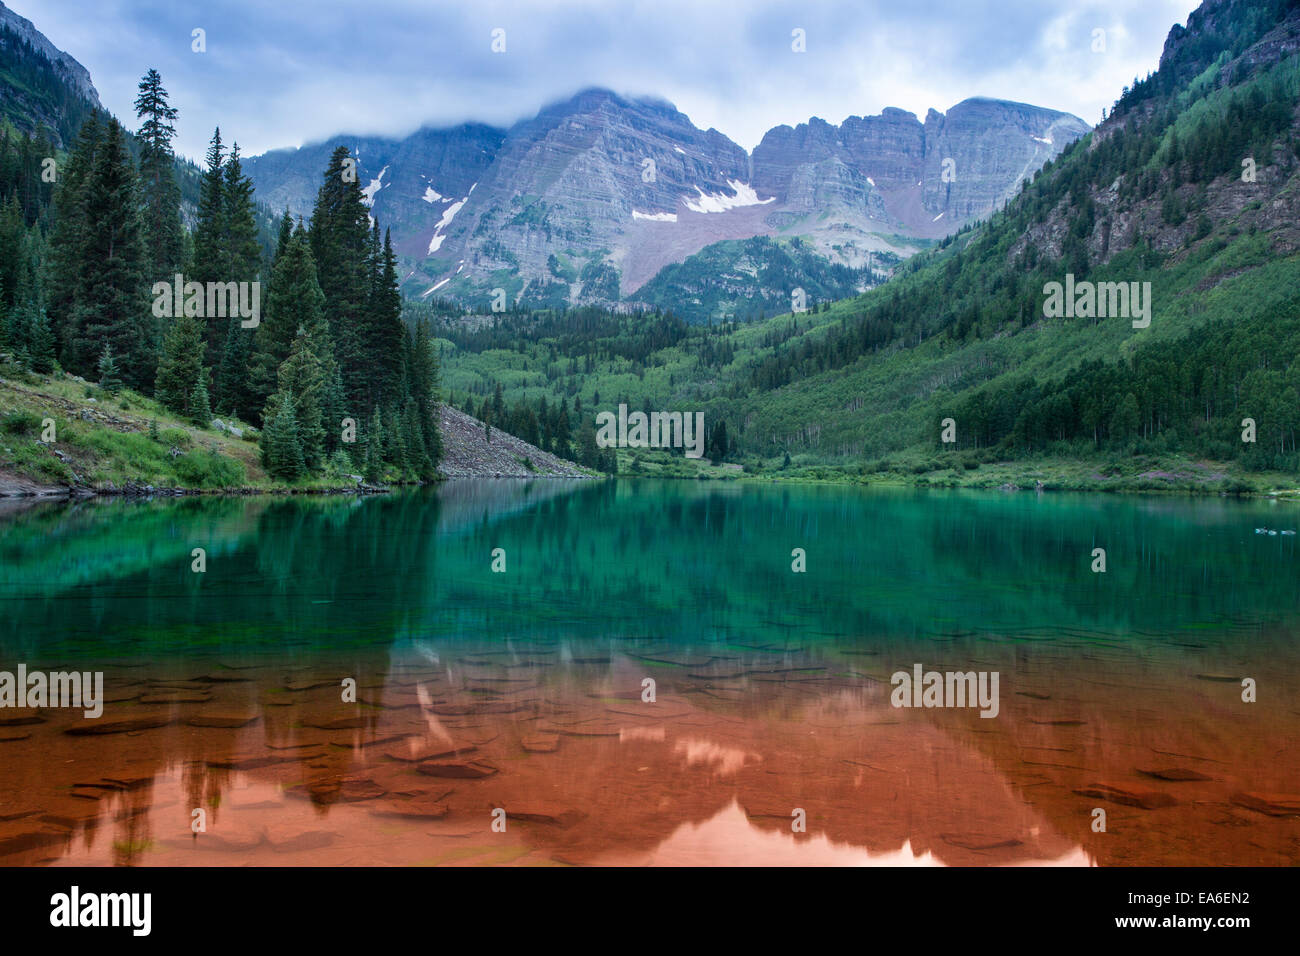 USA, Colorado, Aspen, Maroon Bells red and green - Stock Image